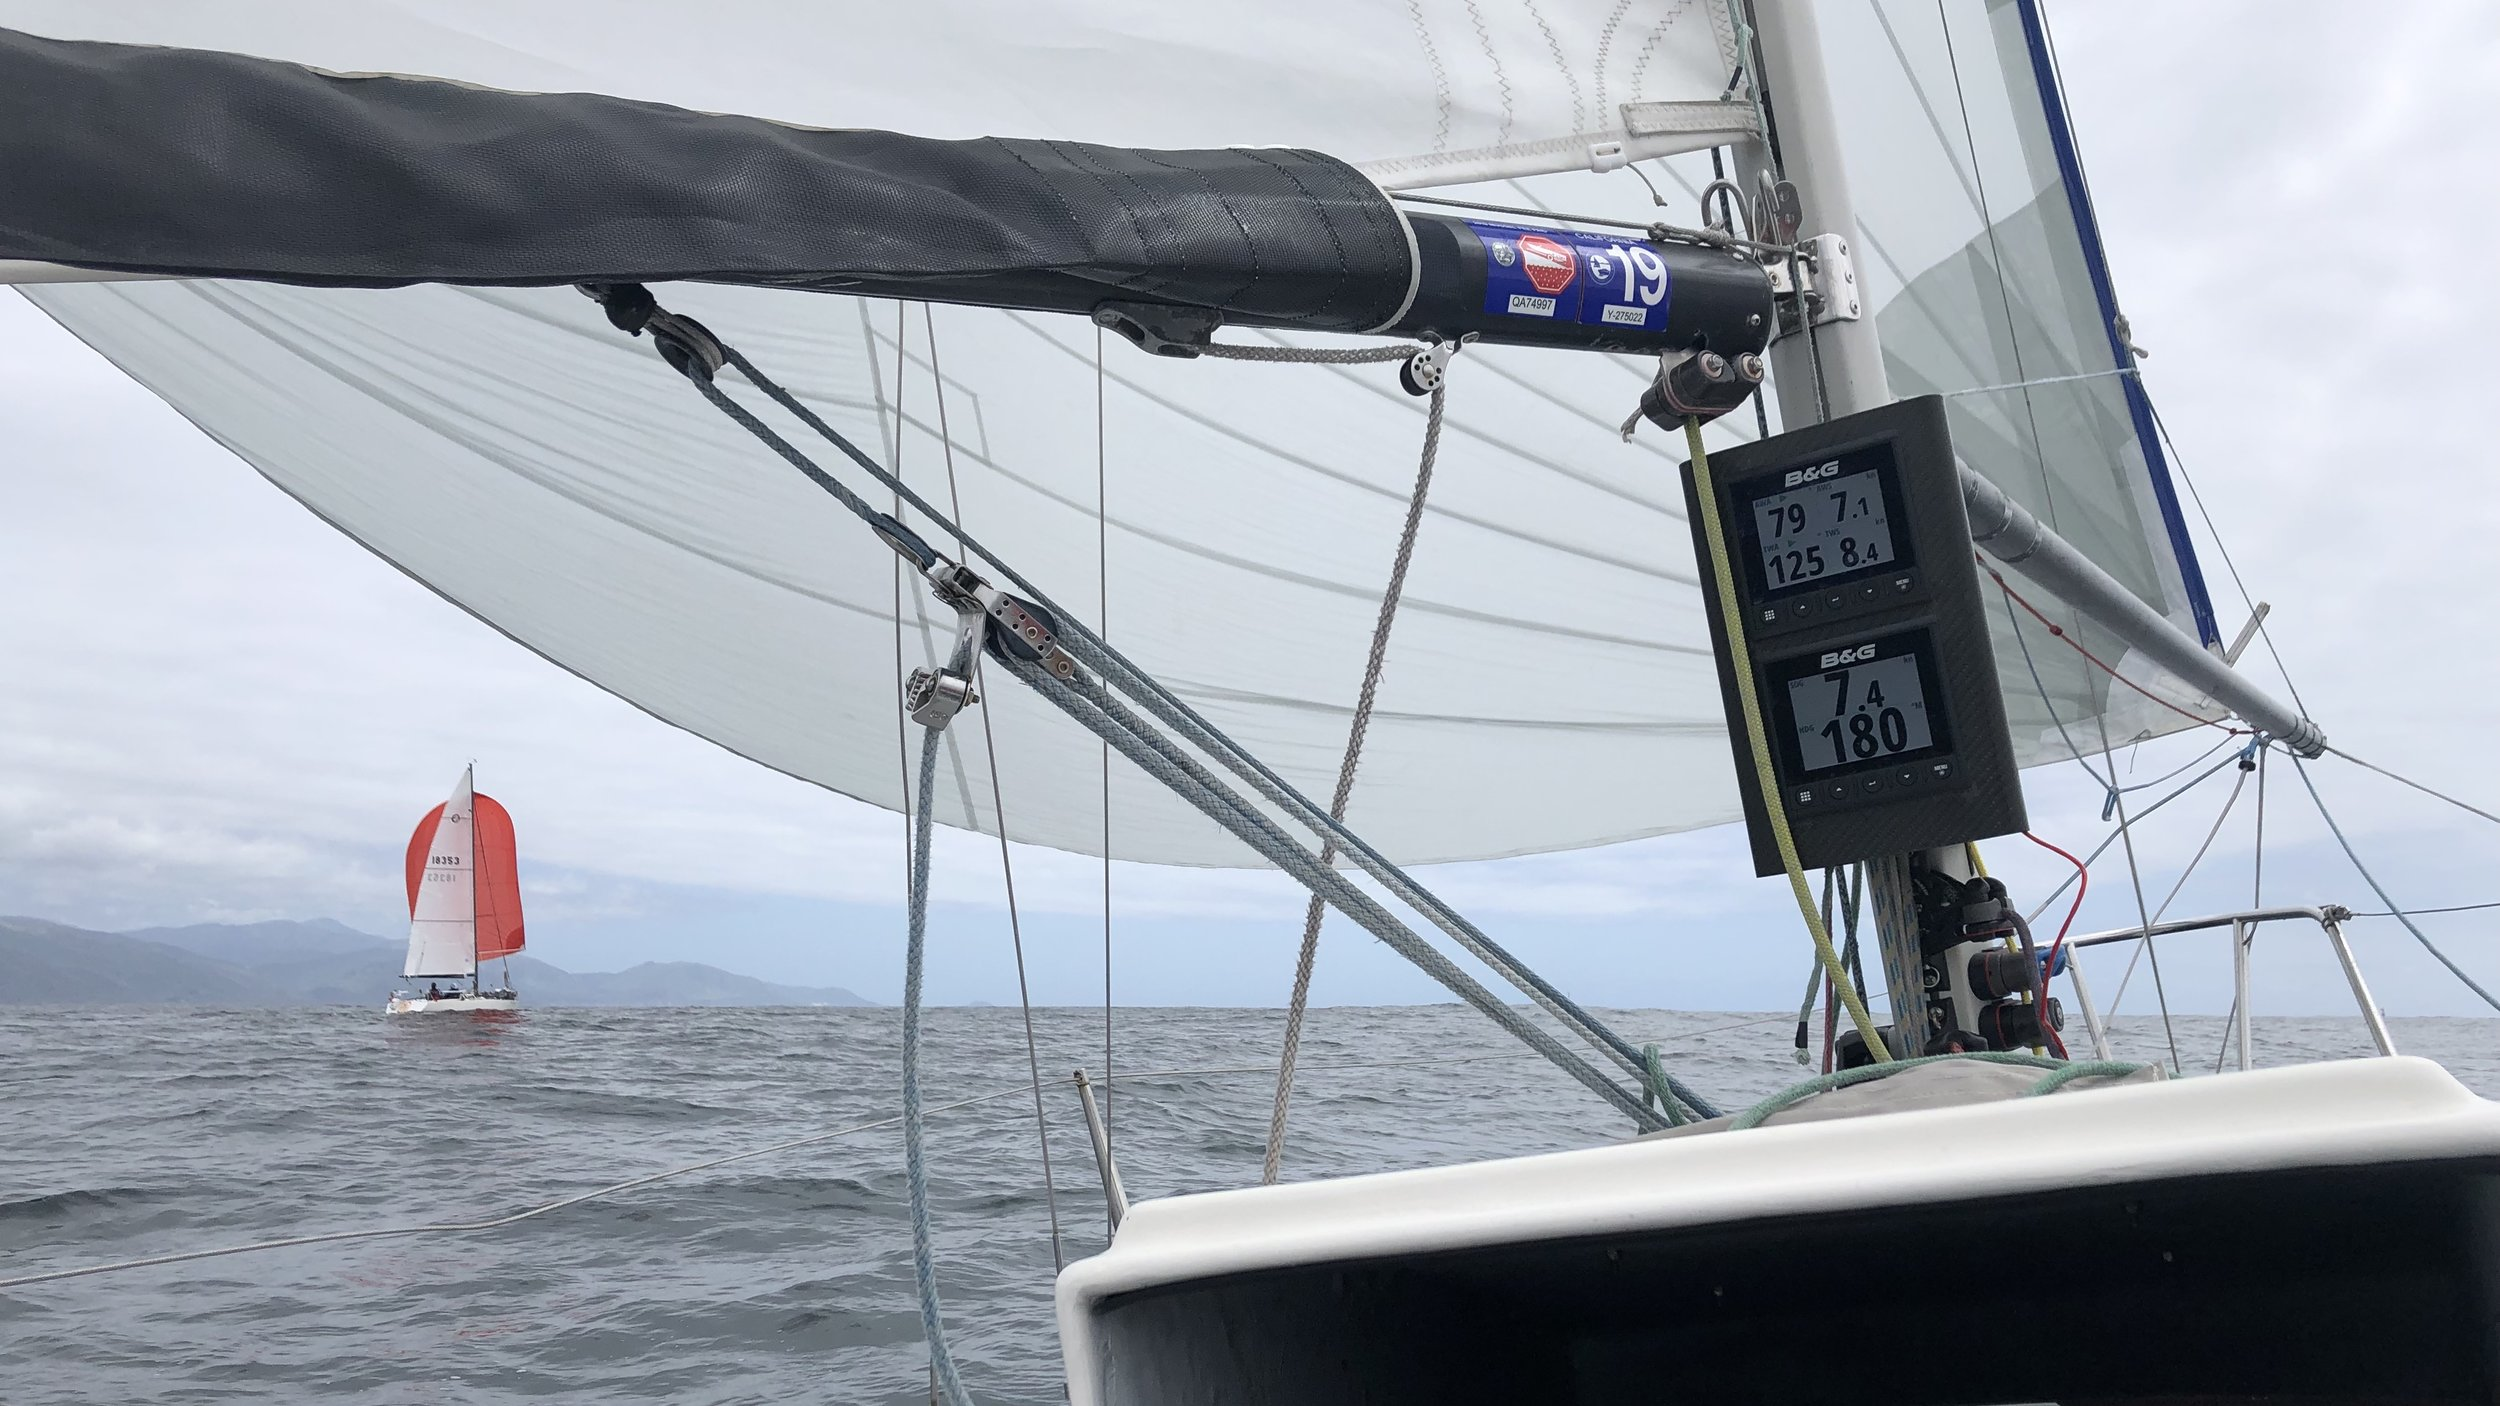 Check out those numbers. A2.5 sailing its optimal angle